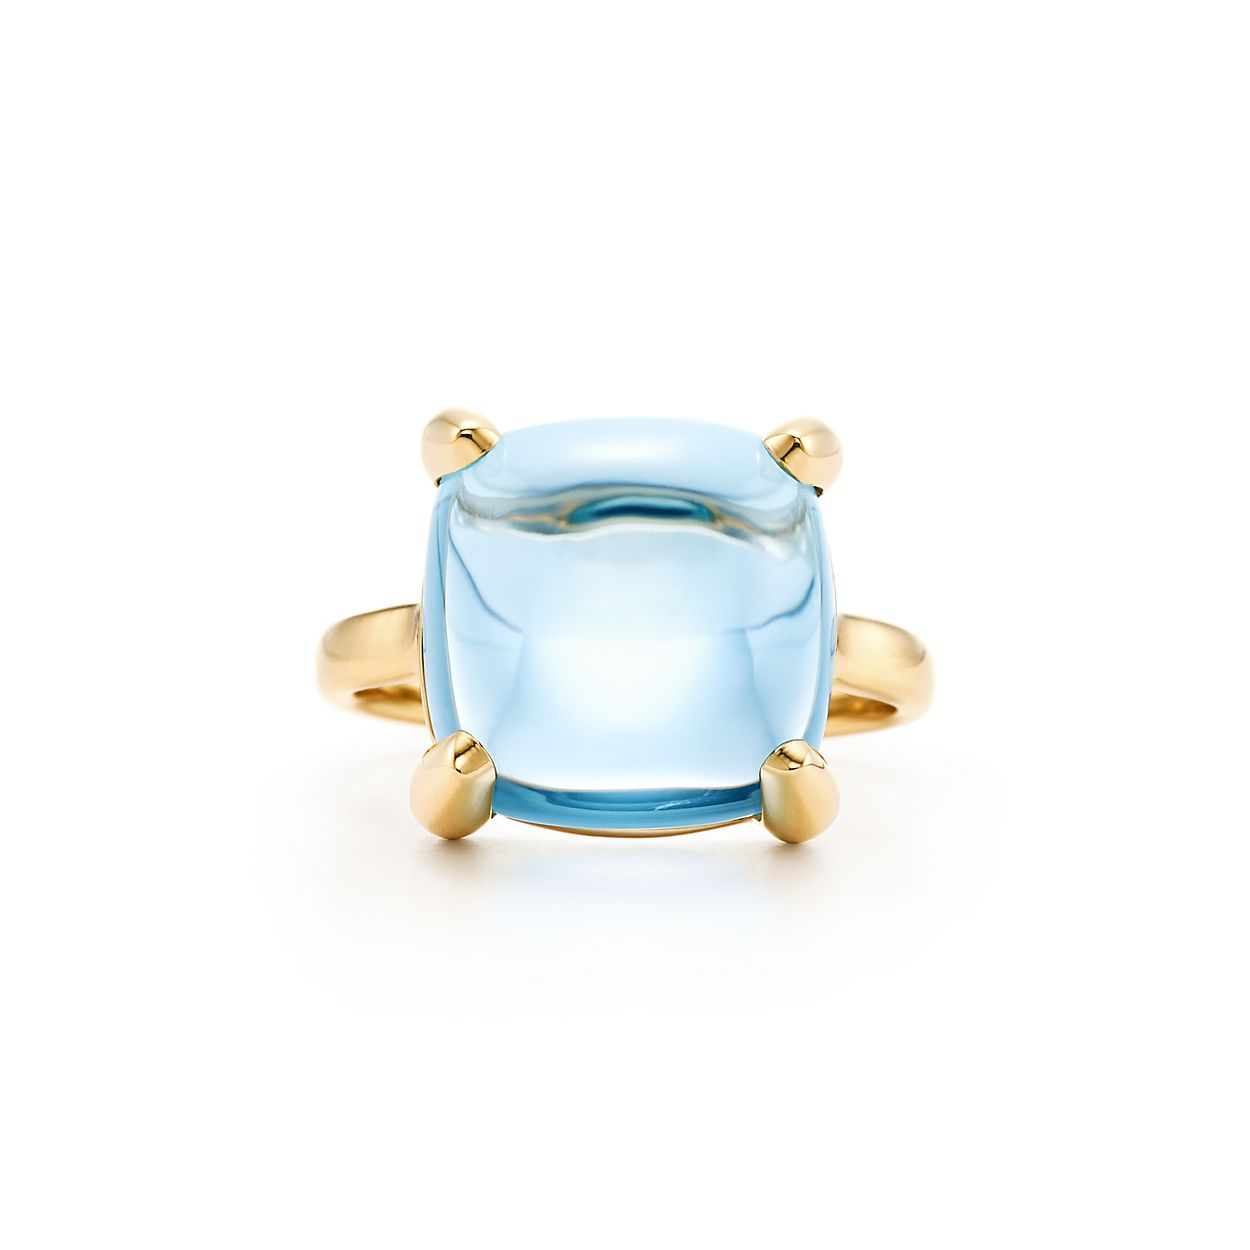 Palomas Sugar Stacks ring in 18k gold with a blue topaz - Size 7 Tiffany & Co. 2PiCE